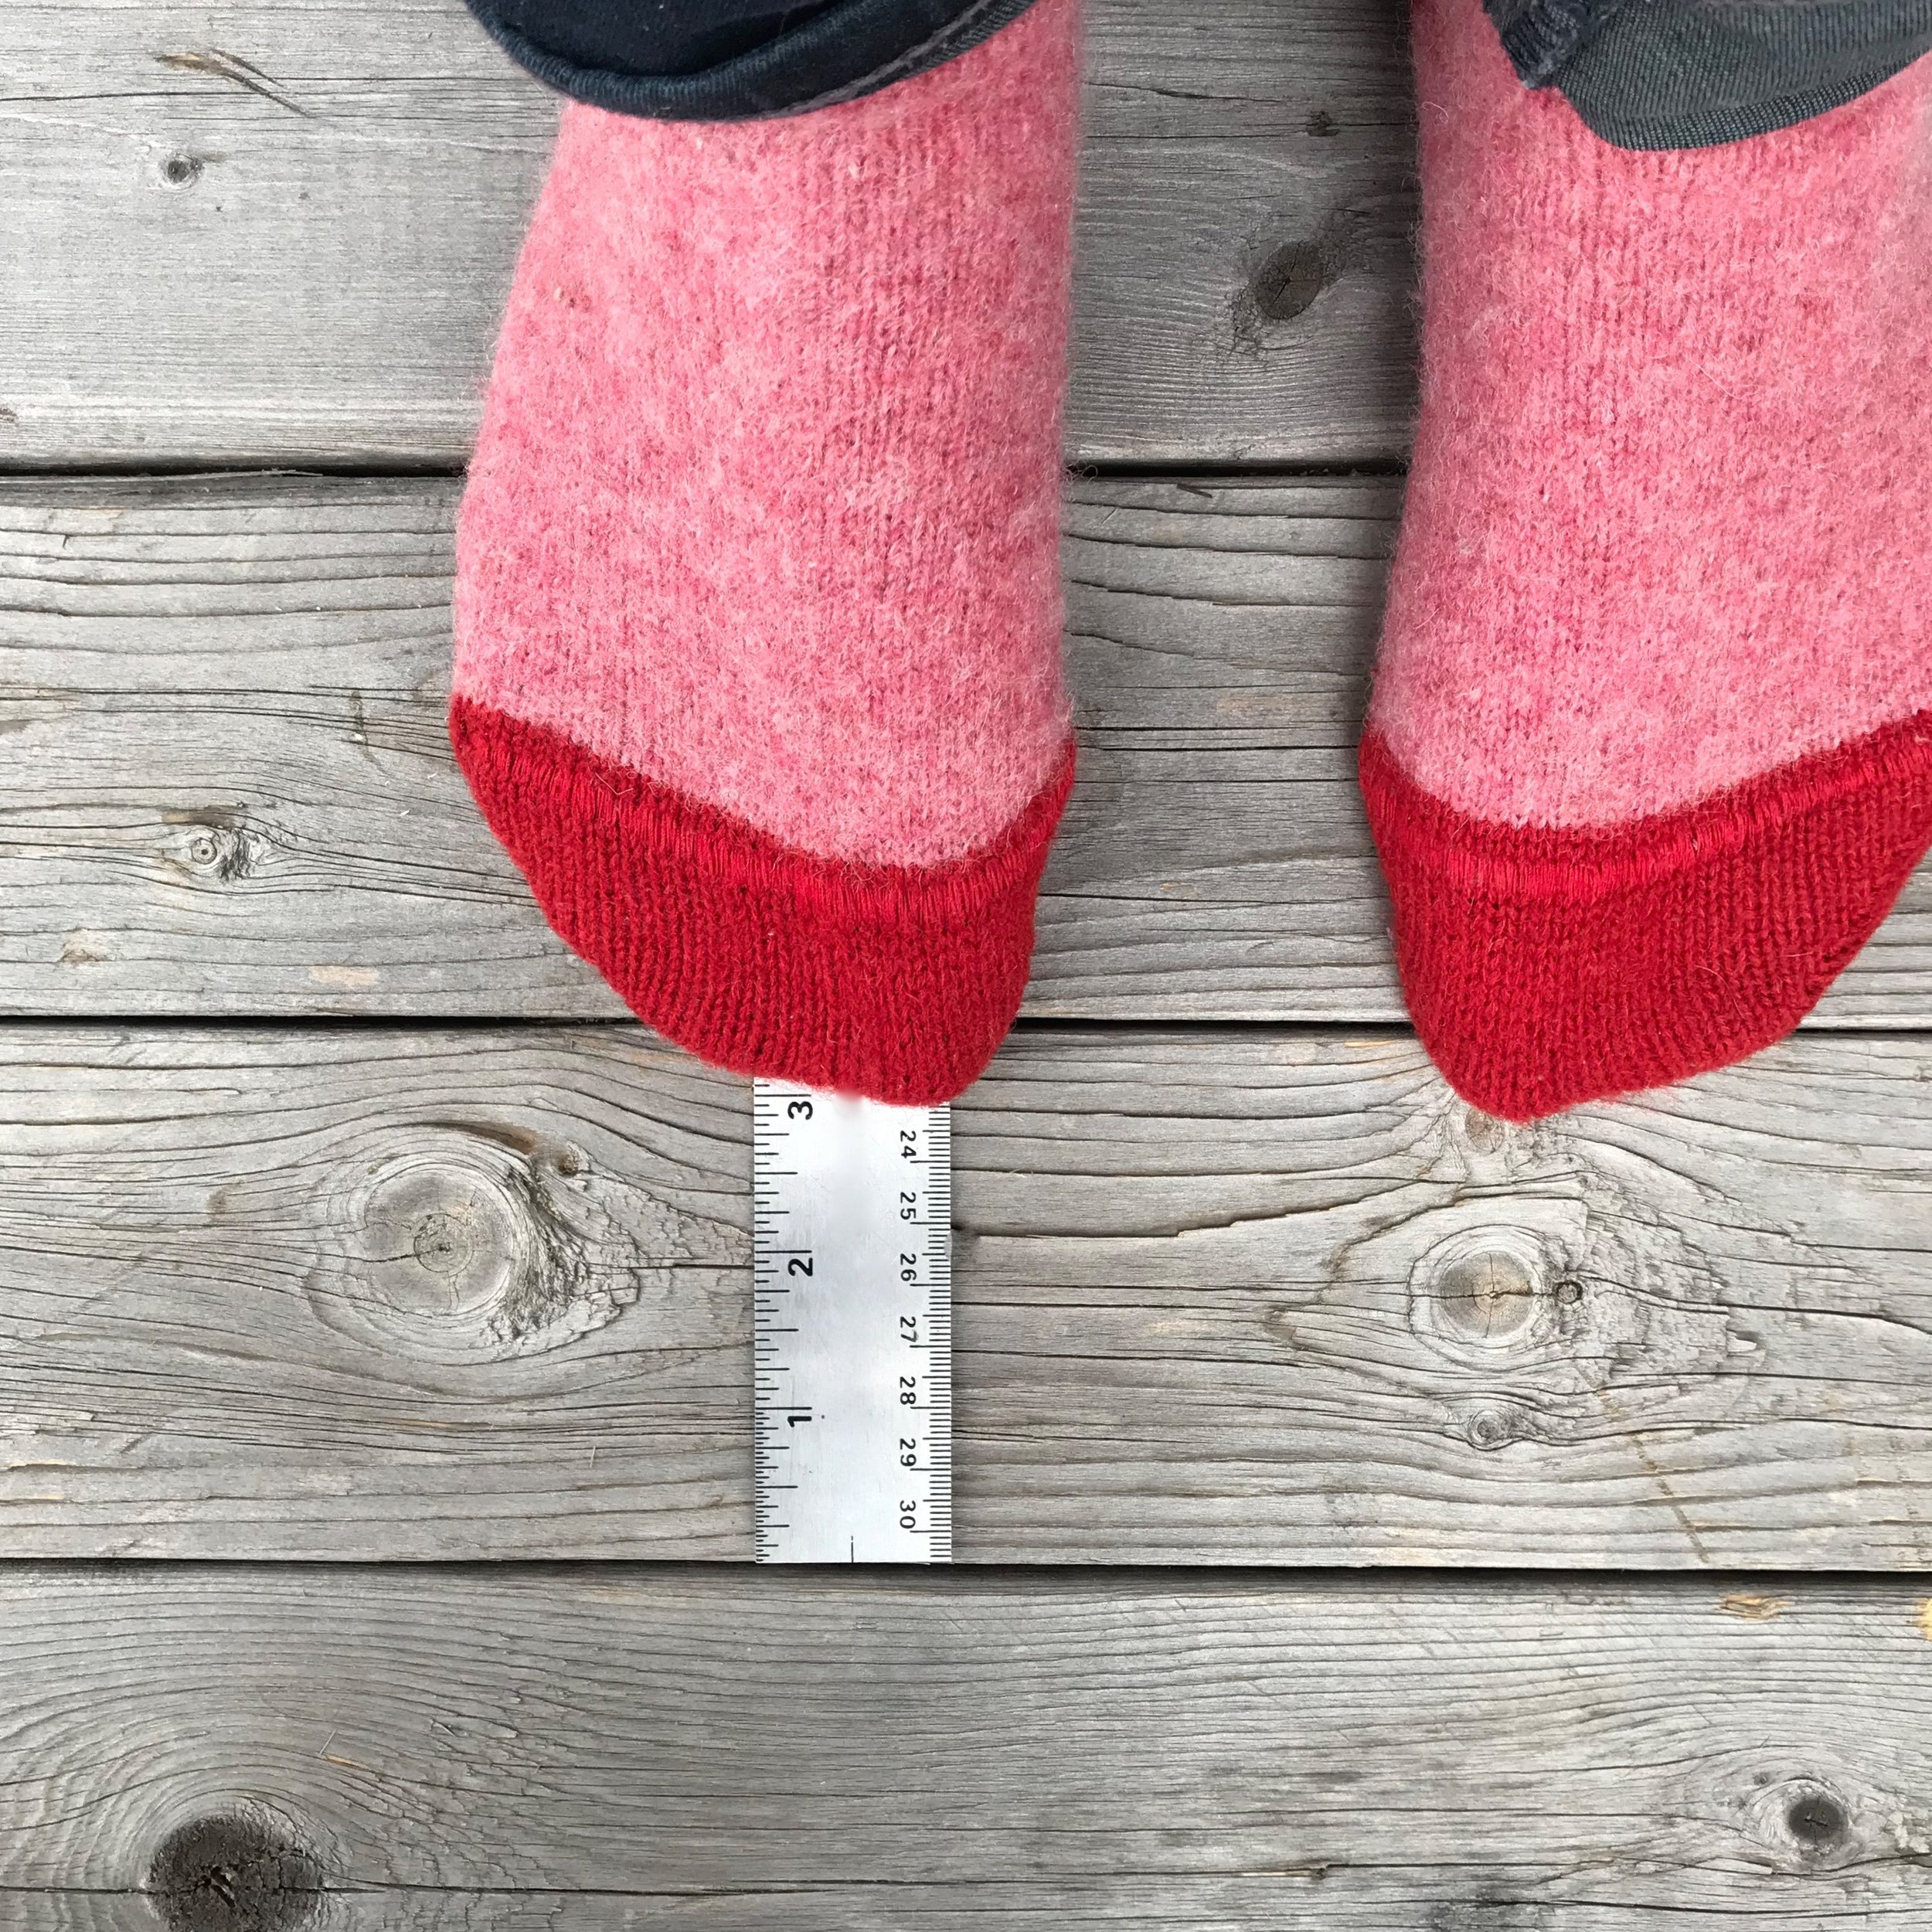 Stand on top with your heel against the wall and the longest part of you foot over the millimetre measurement. Record this measurement. (In this photo, the measurement is 231mm)